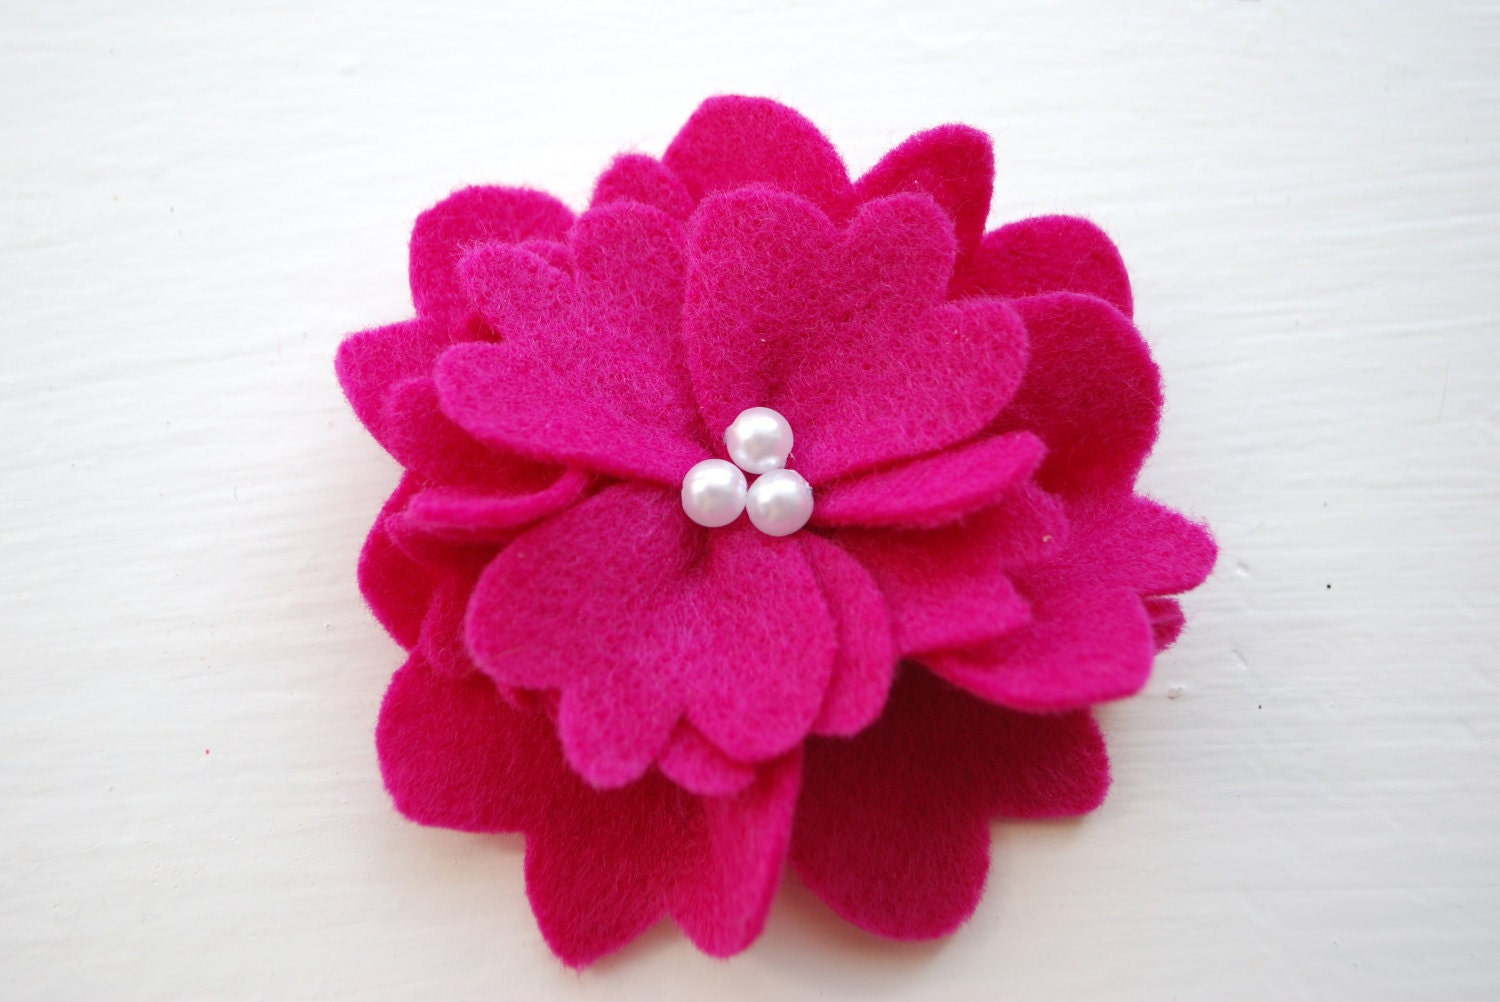 Spring Peony Flower Hair Clip in Bright Pink with Pearl Center, Available on a clip or your choice of Elastic Headbands